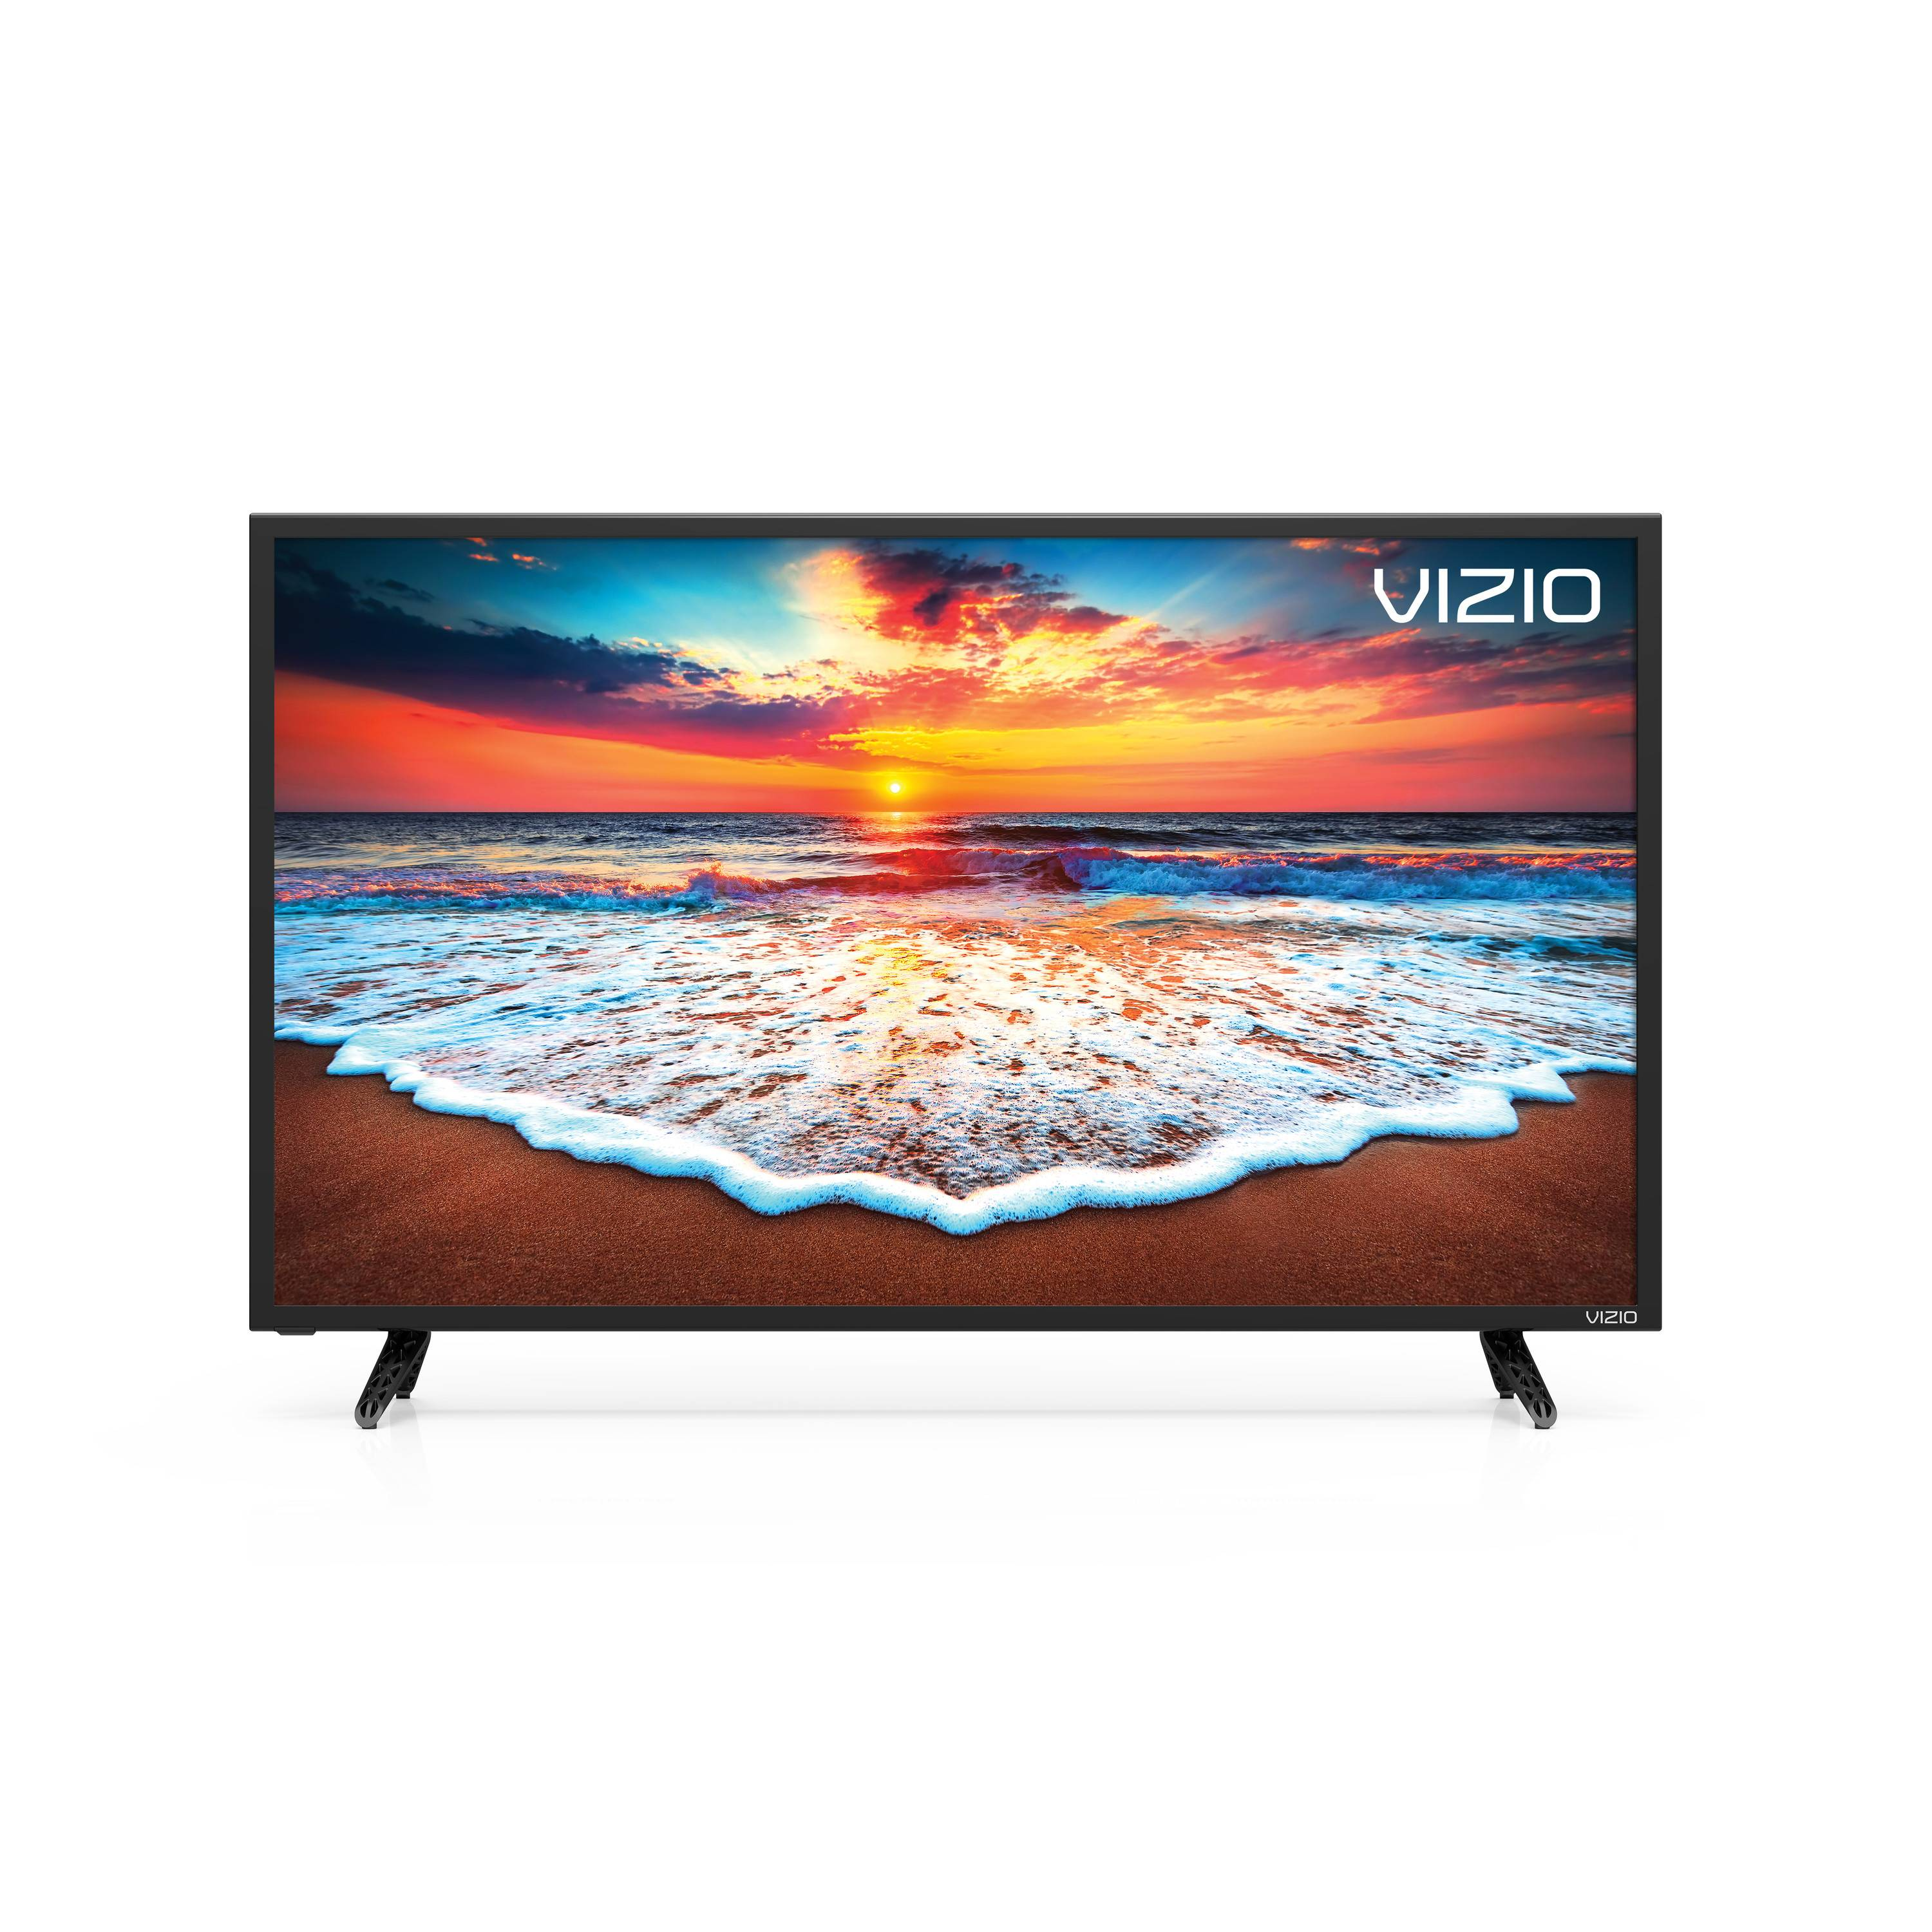 "VIZIO 32"" Class FHD (1080P) Smart LED TV (D32f-F1) (2018 Model)"